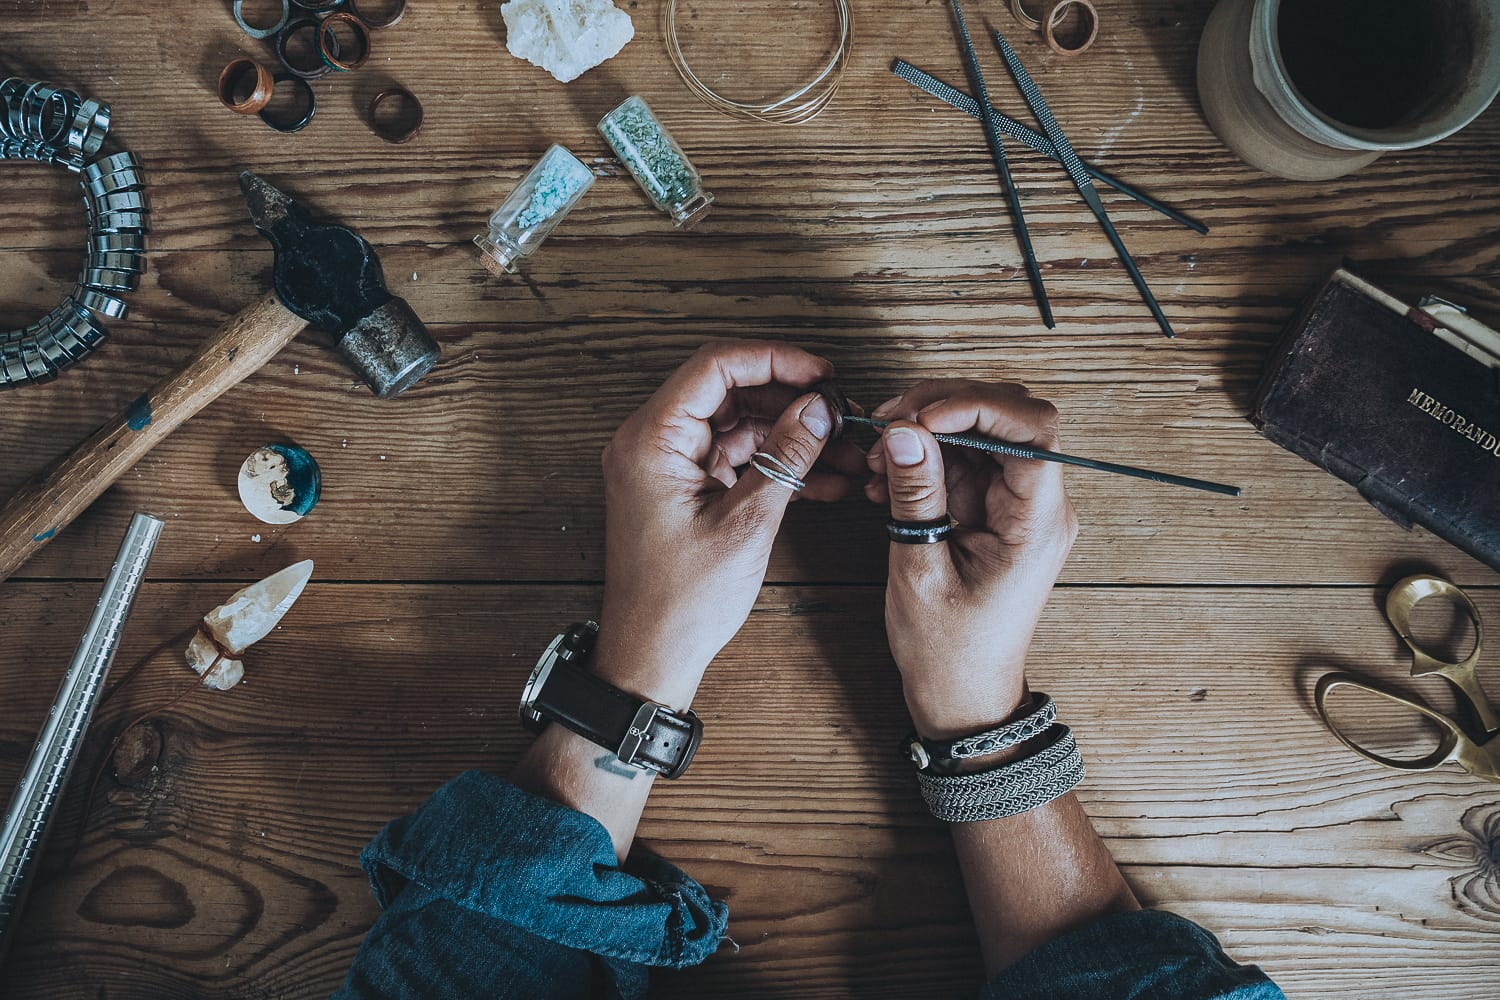 hands working on a wooden ring